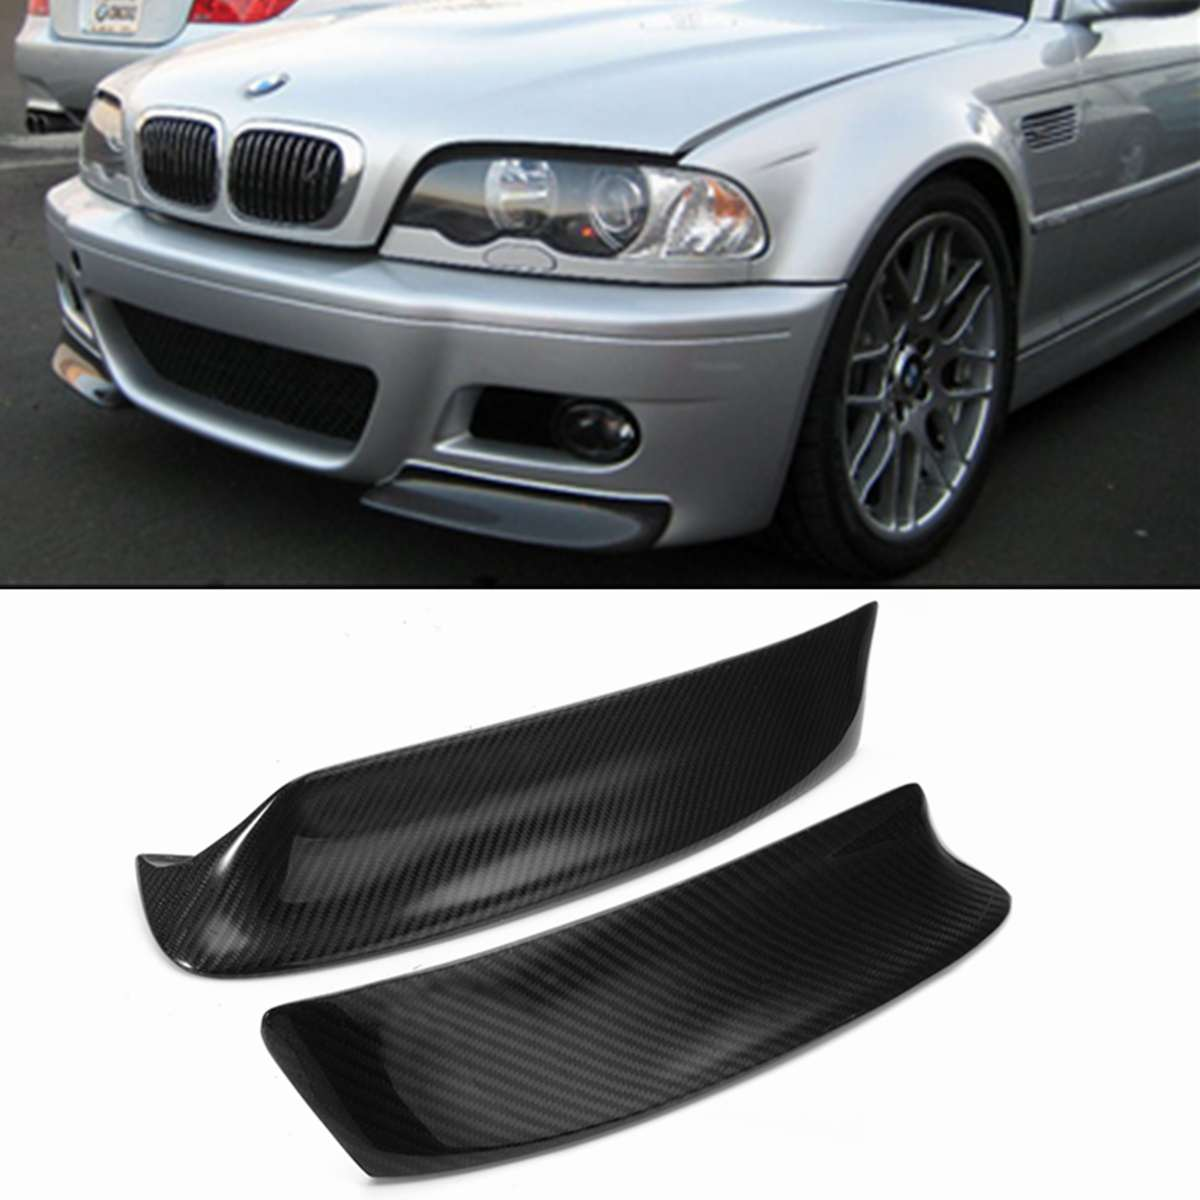 1Pair Real Carbon Fiber E46 M3 Car Front Bumper Splitter Lip Diffuser Canard Protector Guard Cover Trim For BMW E46 M3 1999-2006